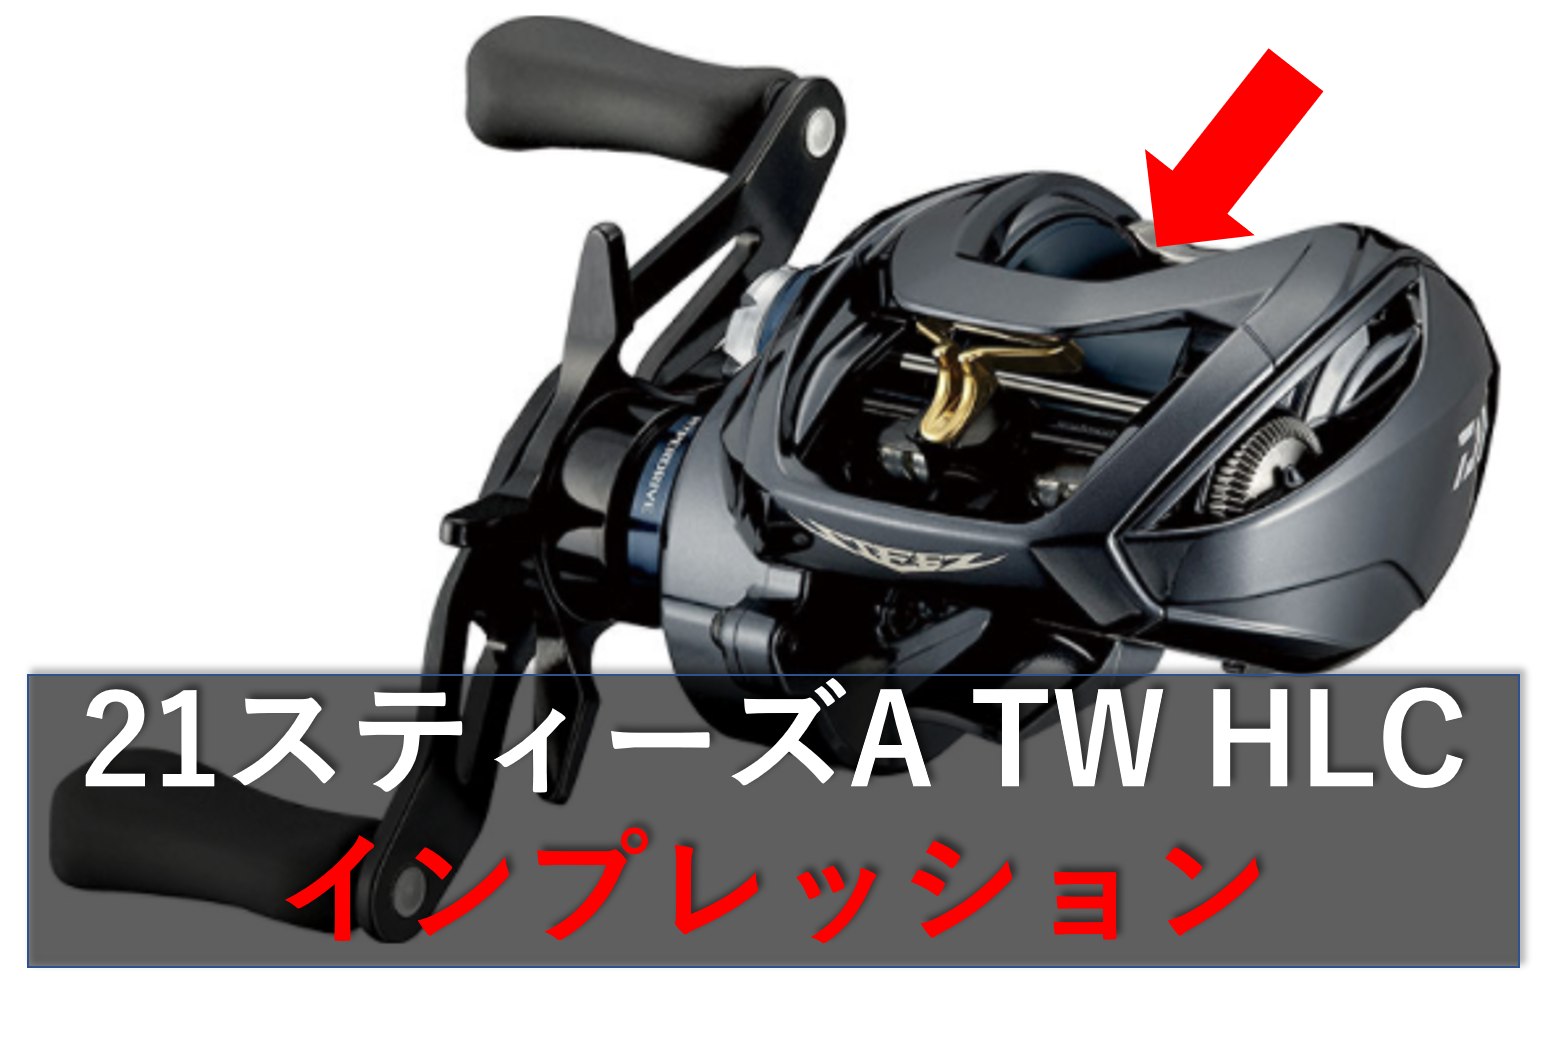 Hlc tw スティーズ a